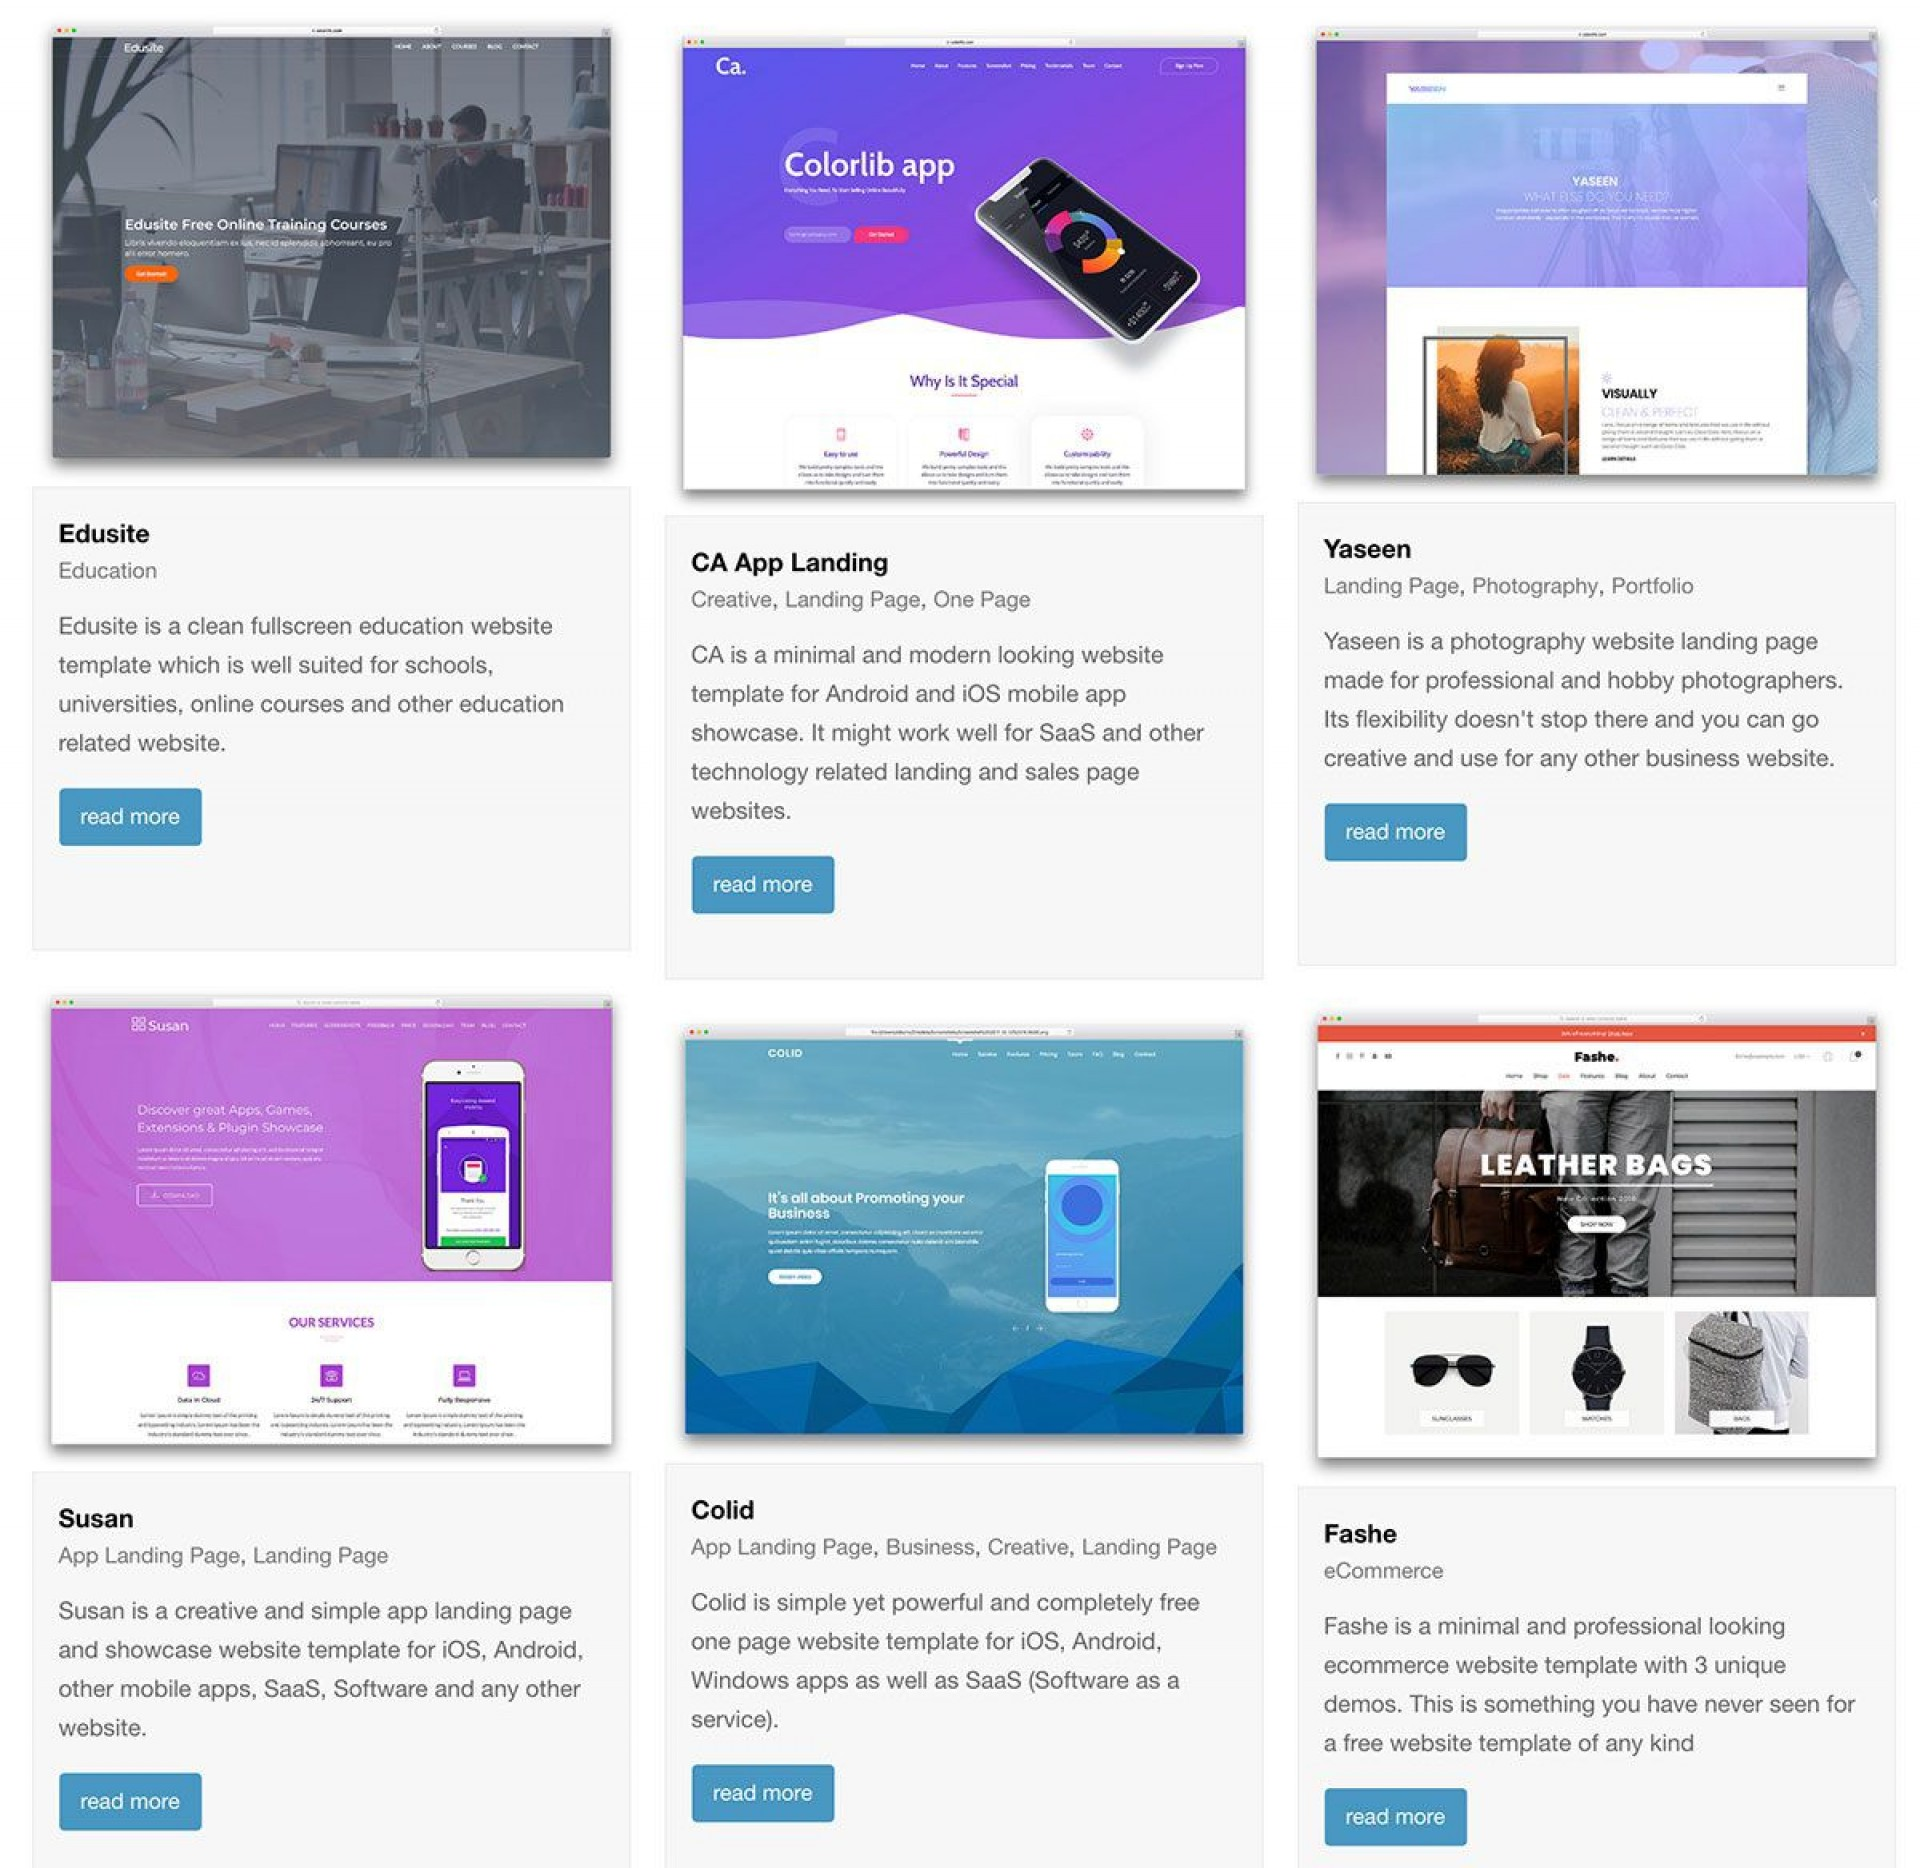 004 Top Creative One Page Website Template Free Download Concept 1920